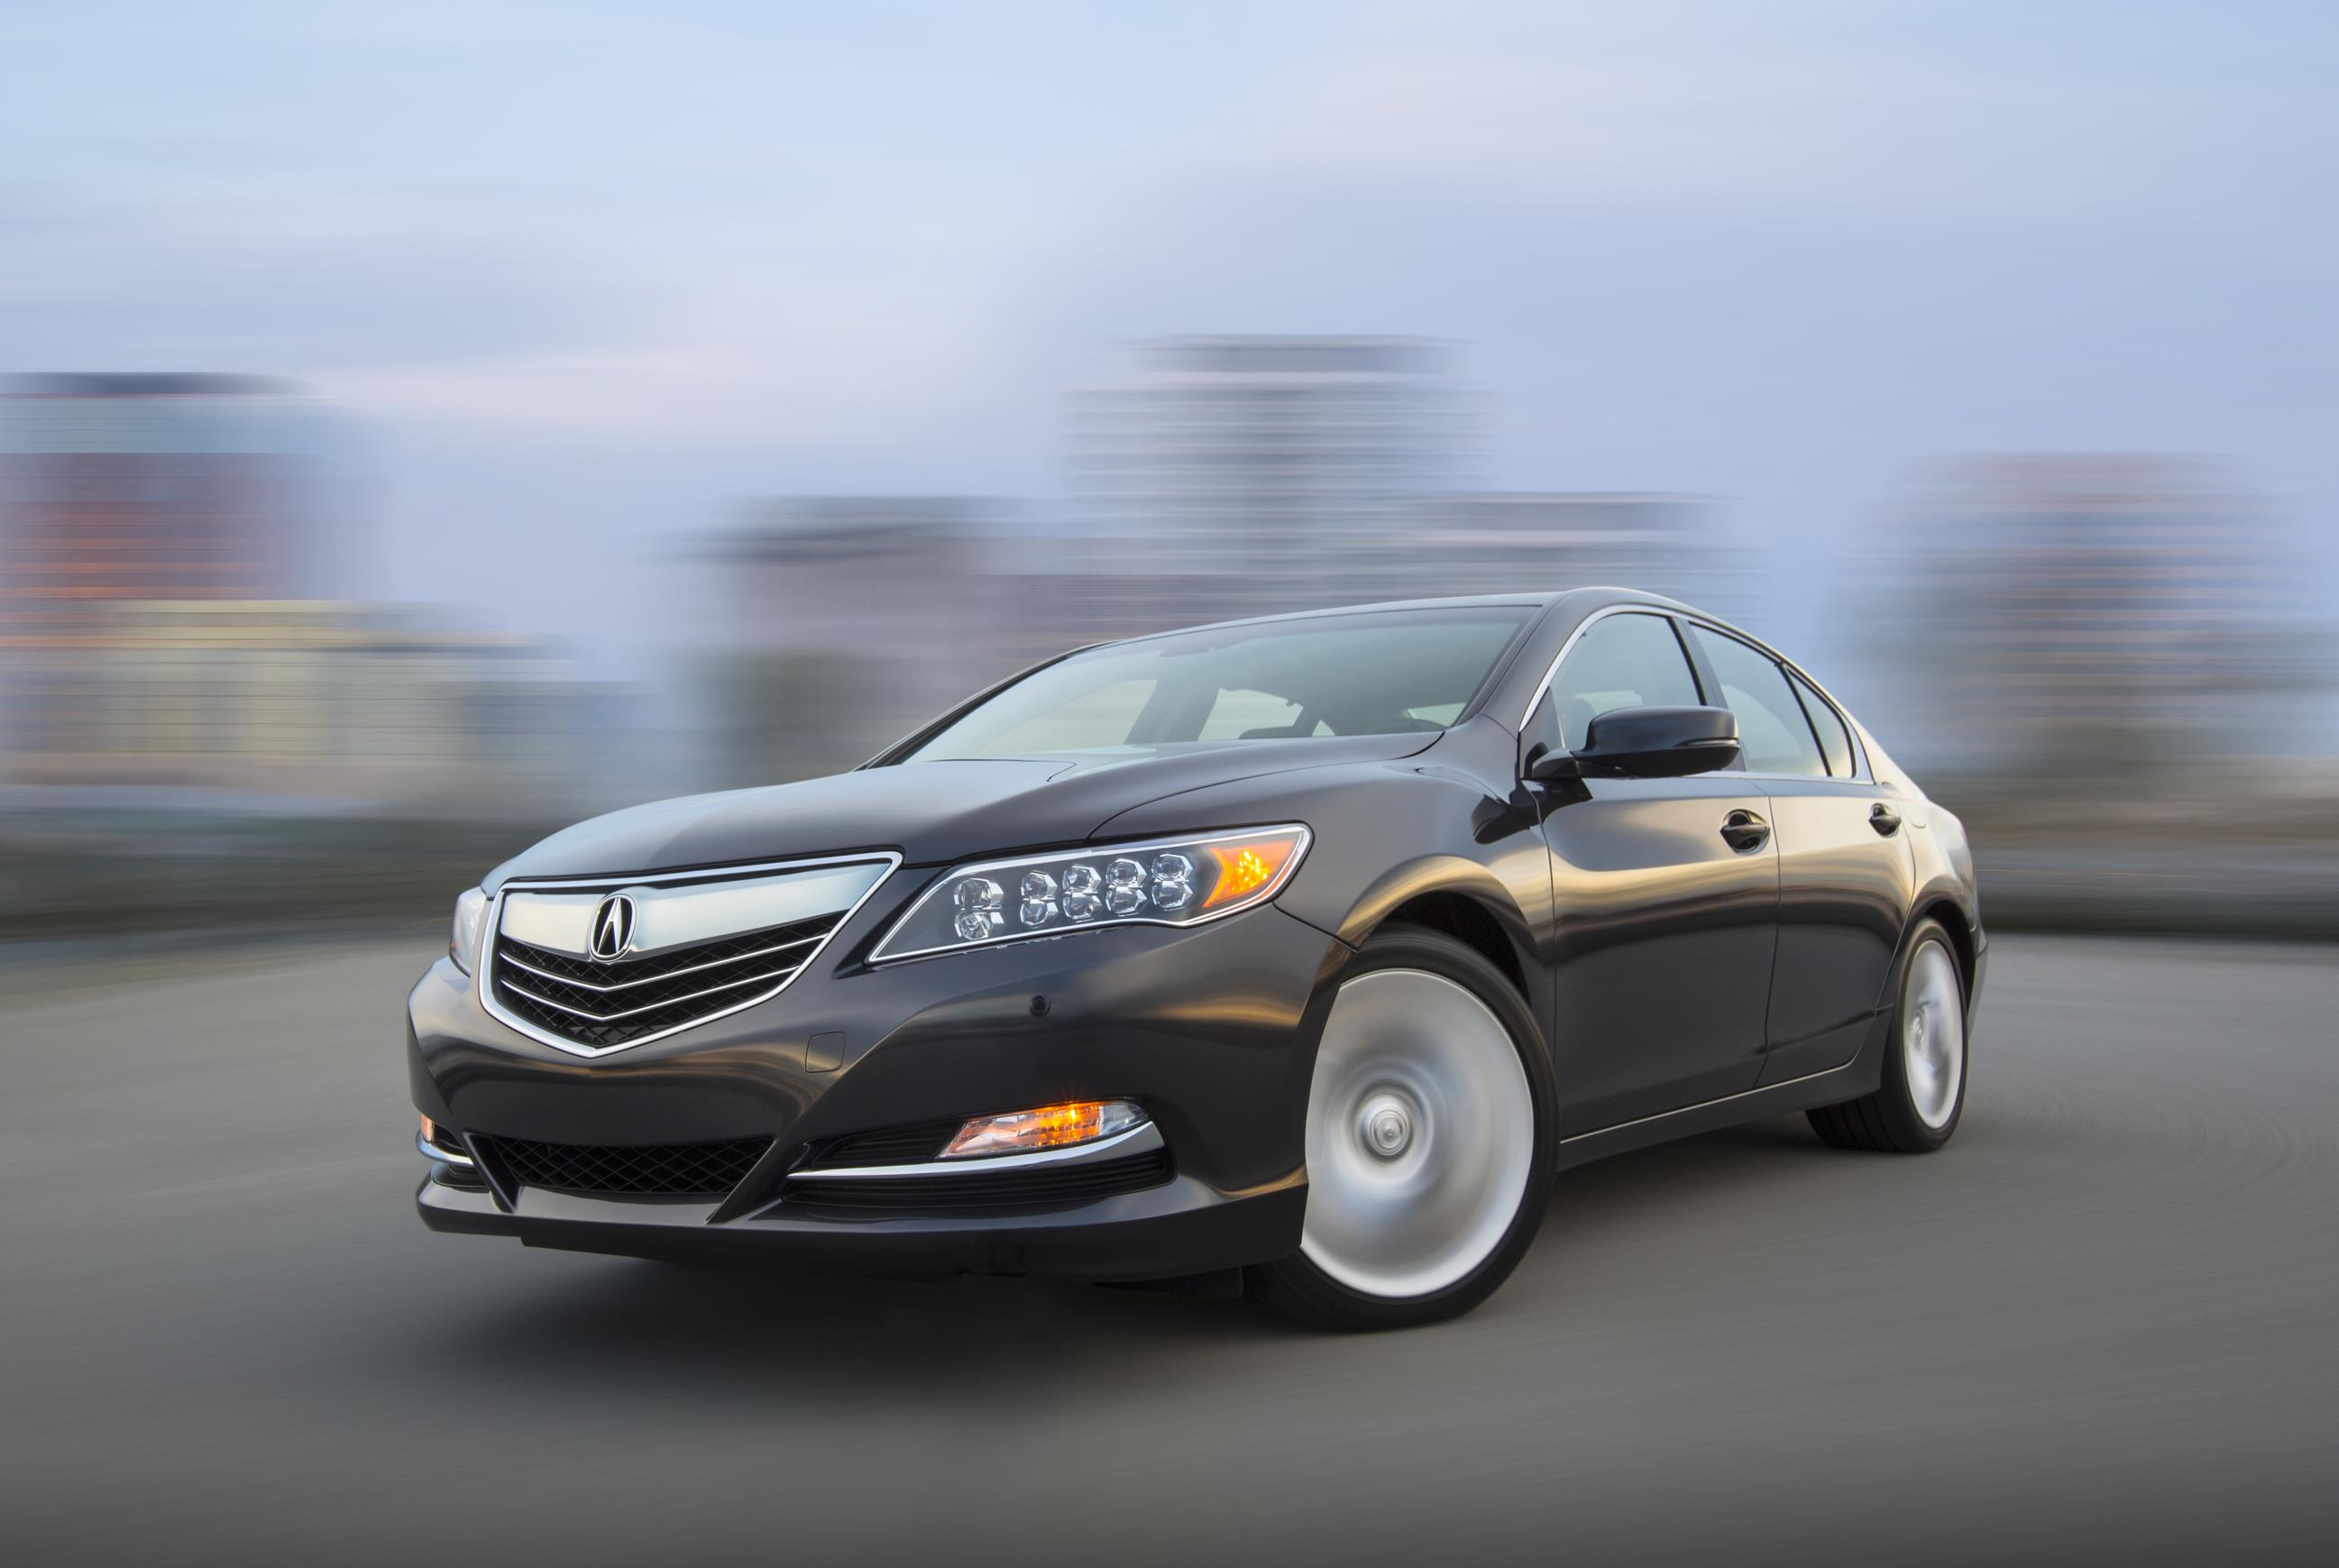 2017 acura rlx priced from 54 450 updated sport hybrid. Black Bedroom Furniture Sets. Home Design Ideas